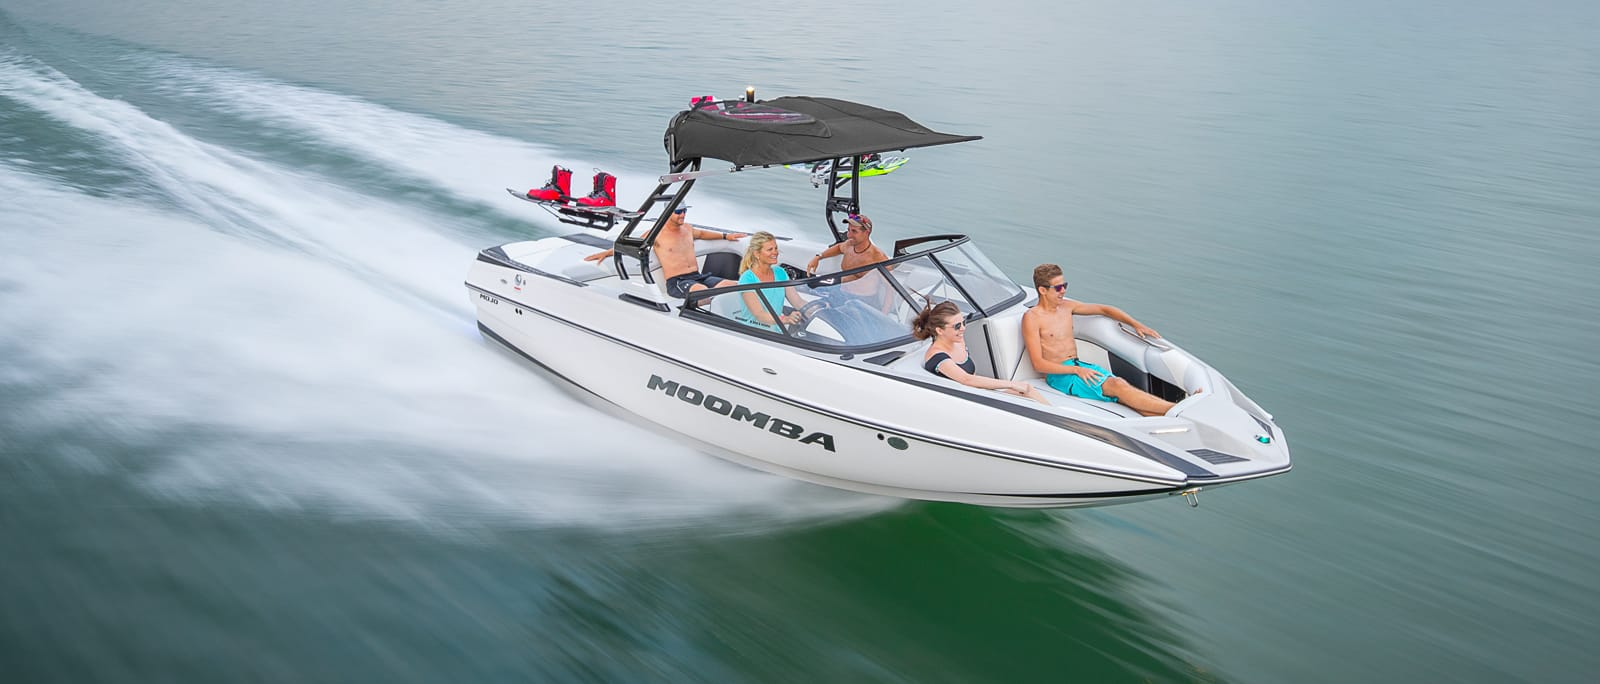 A family enjoying a Moomba wakeboard boat on the water